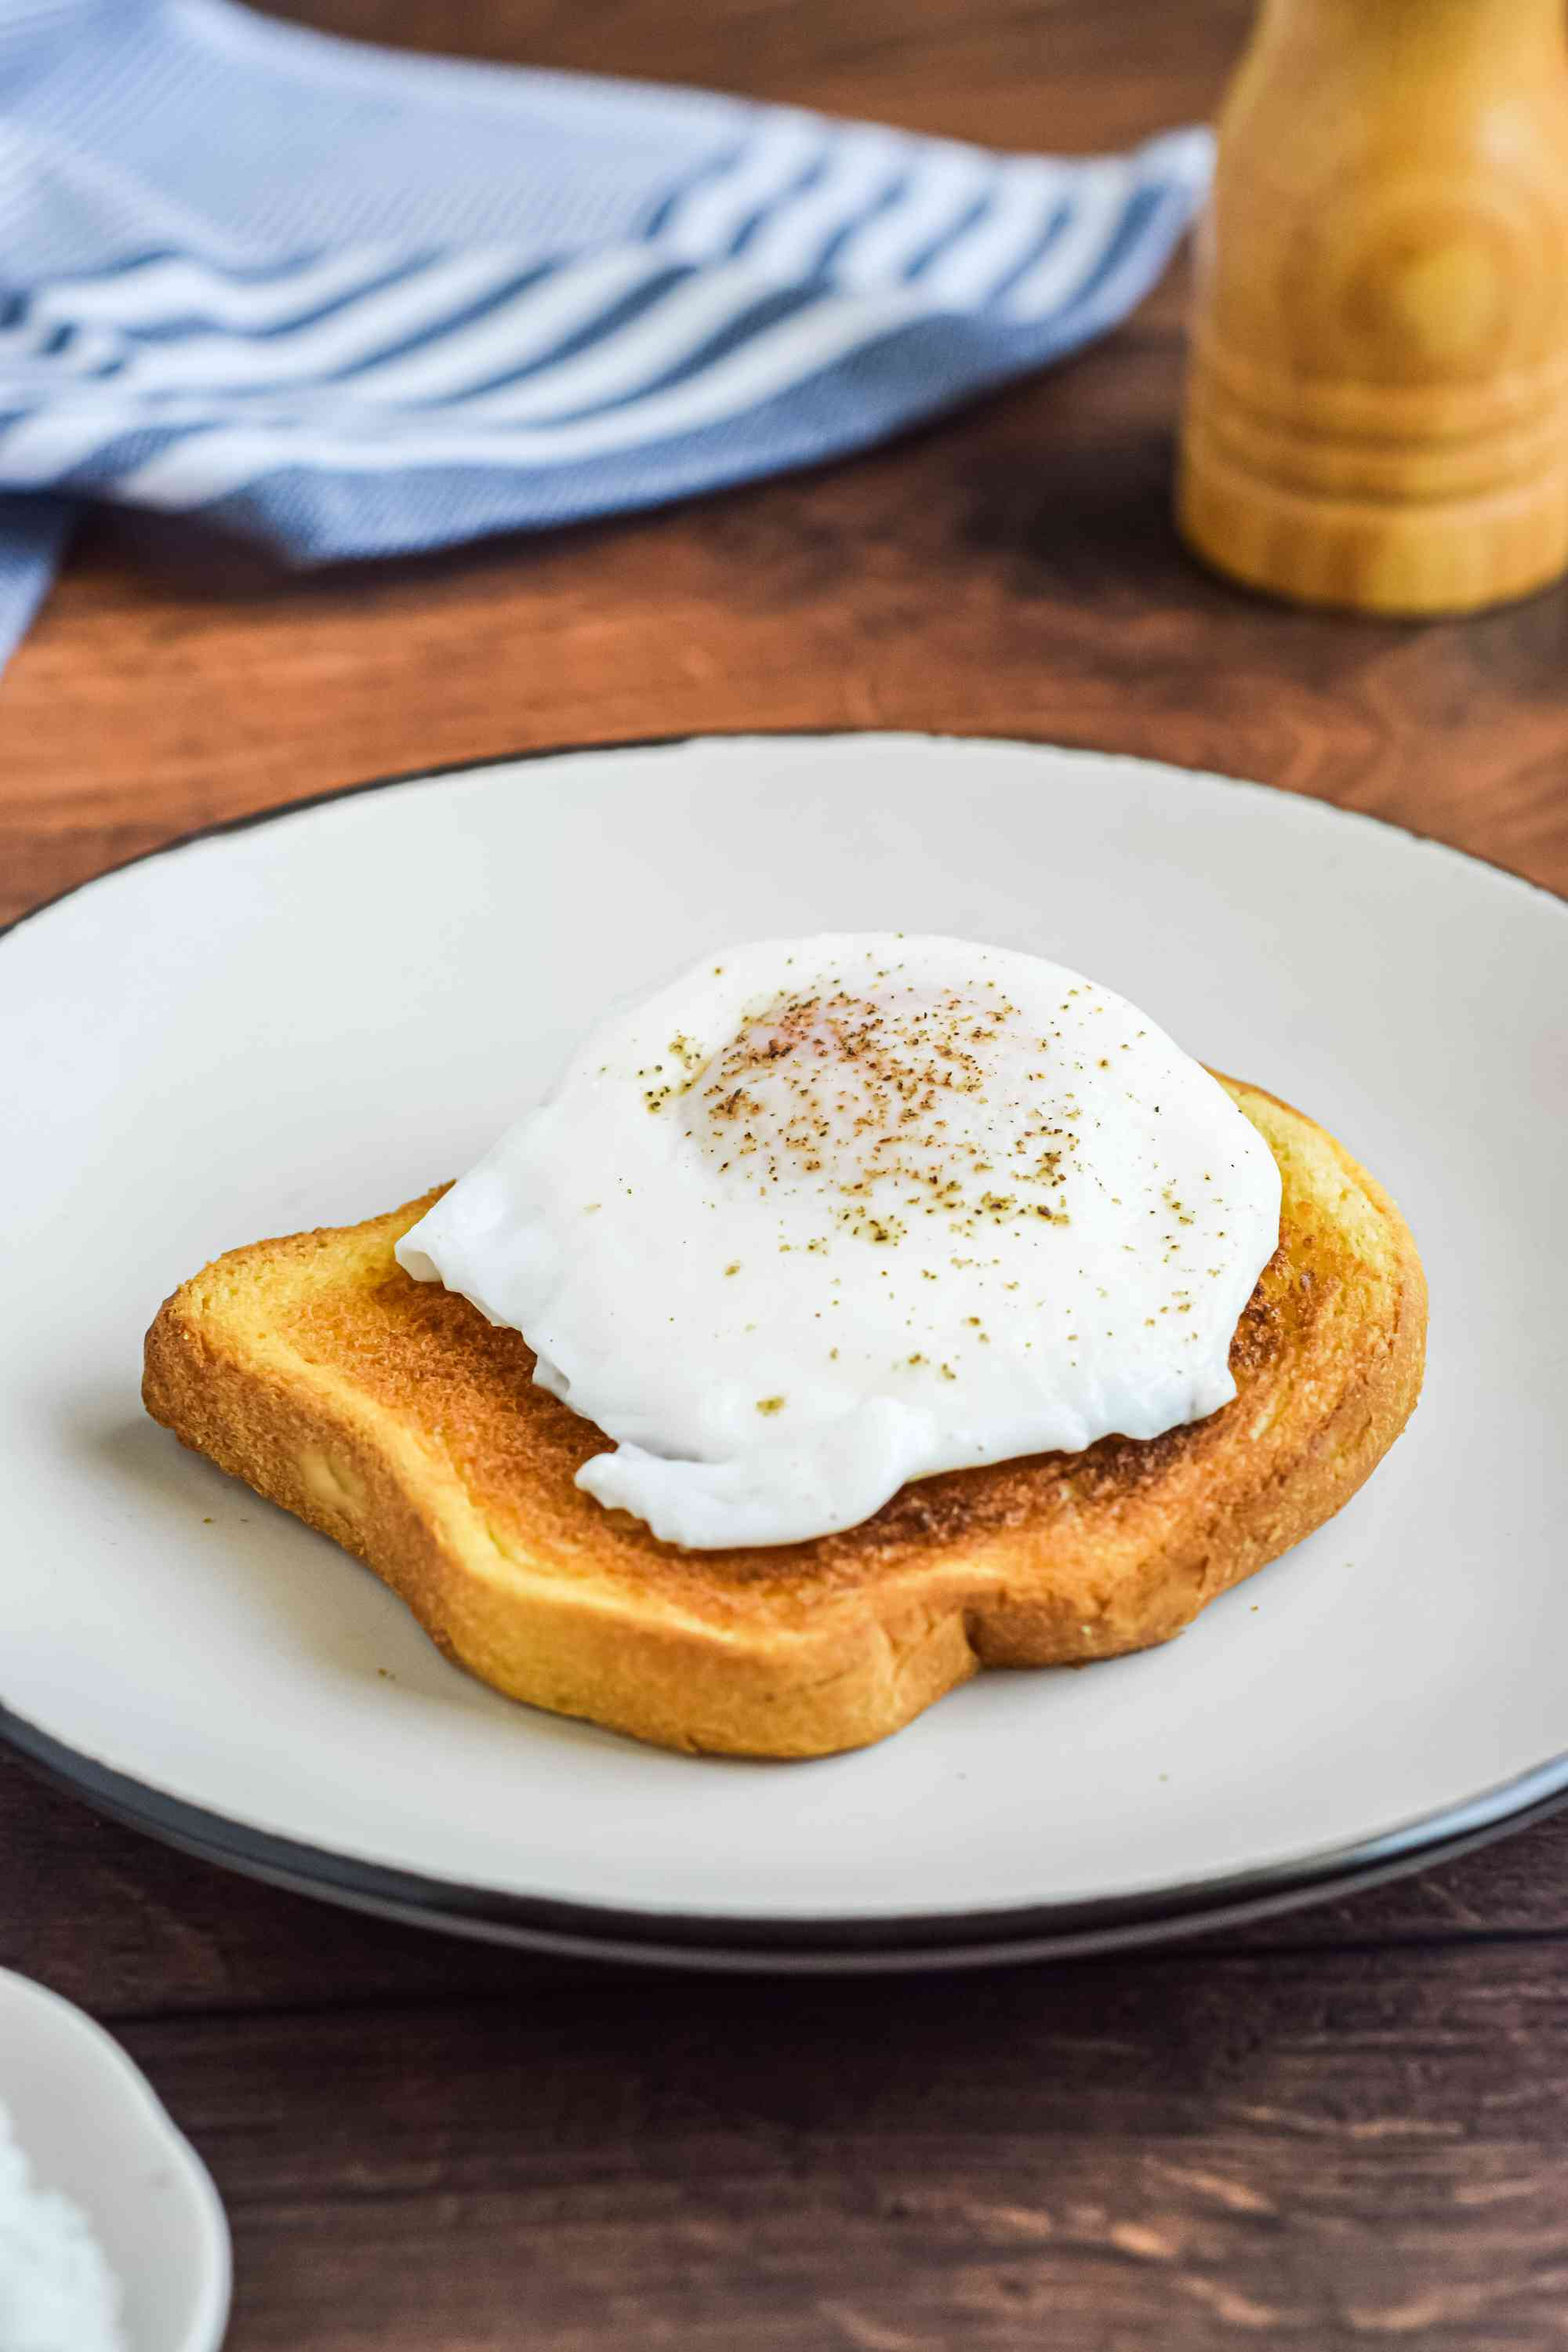 A plate with a poached egg on toast.